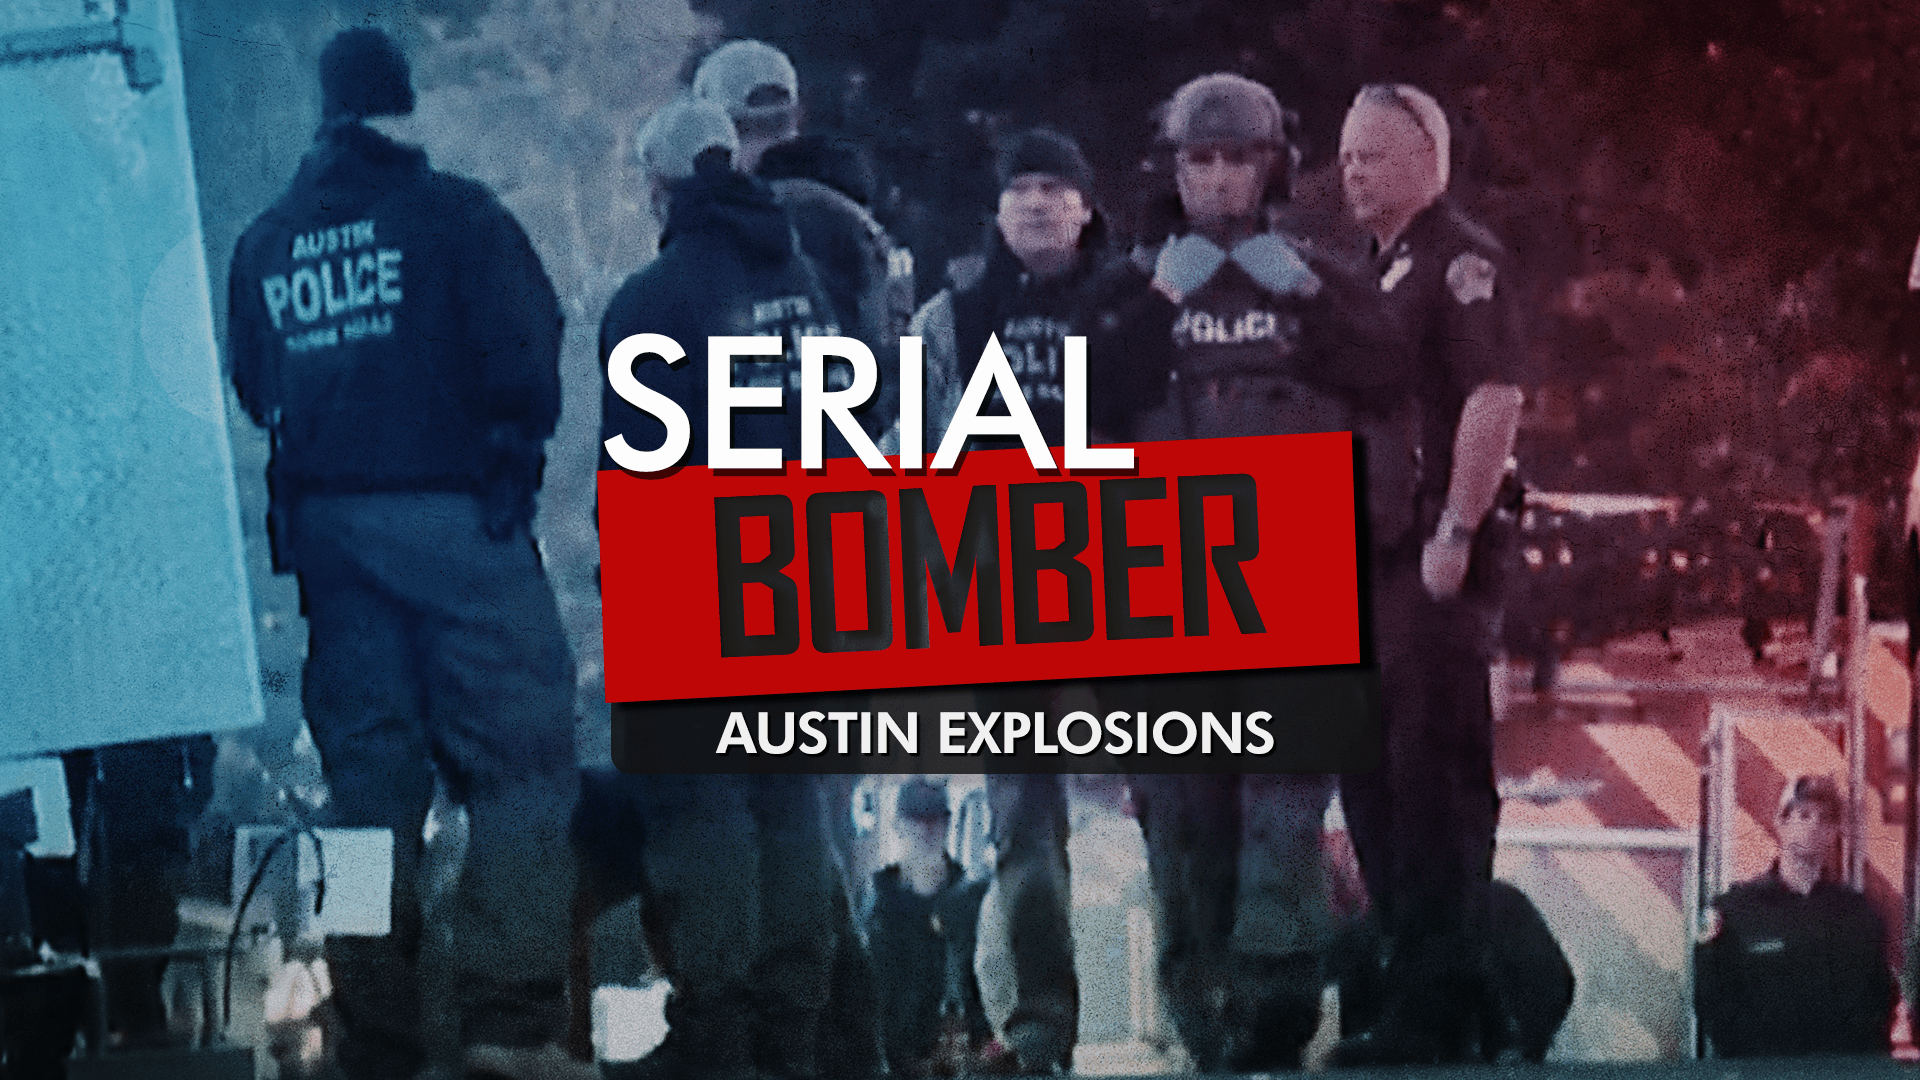 serial bomber graphic_1521486718308.png.jpg